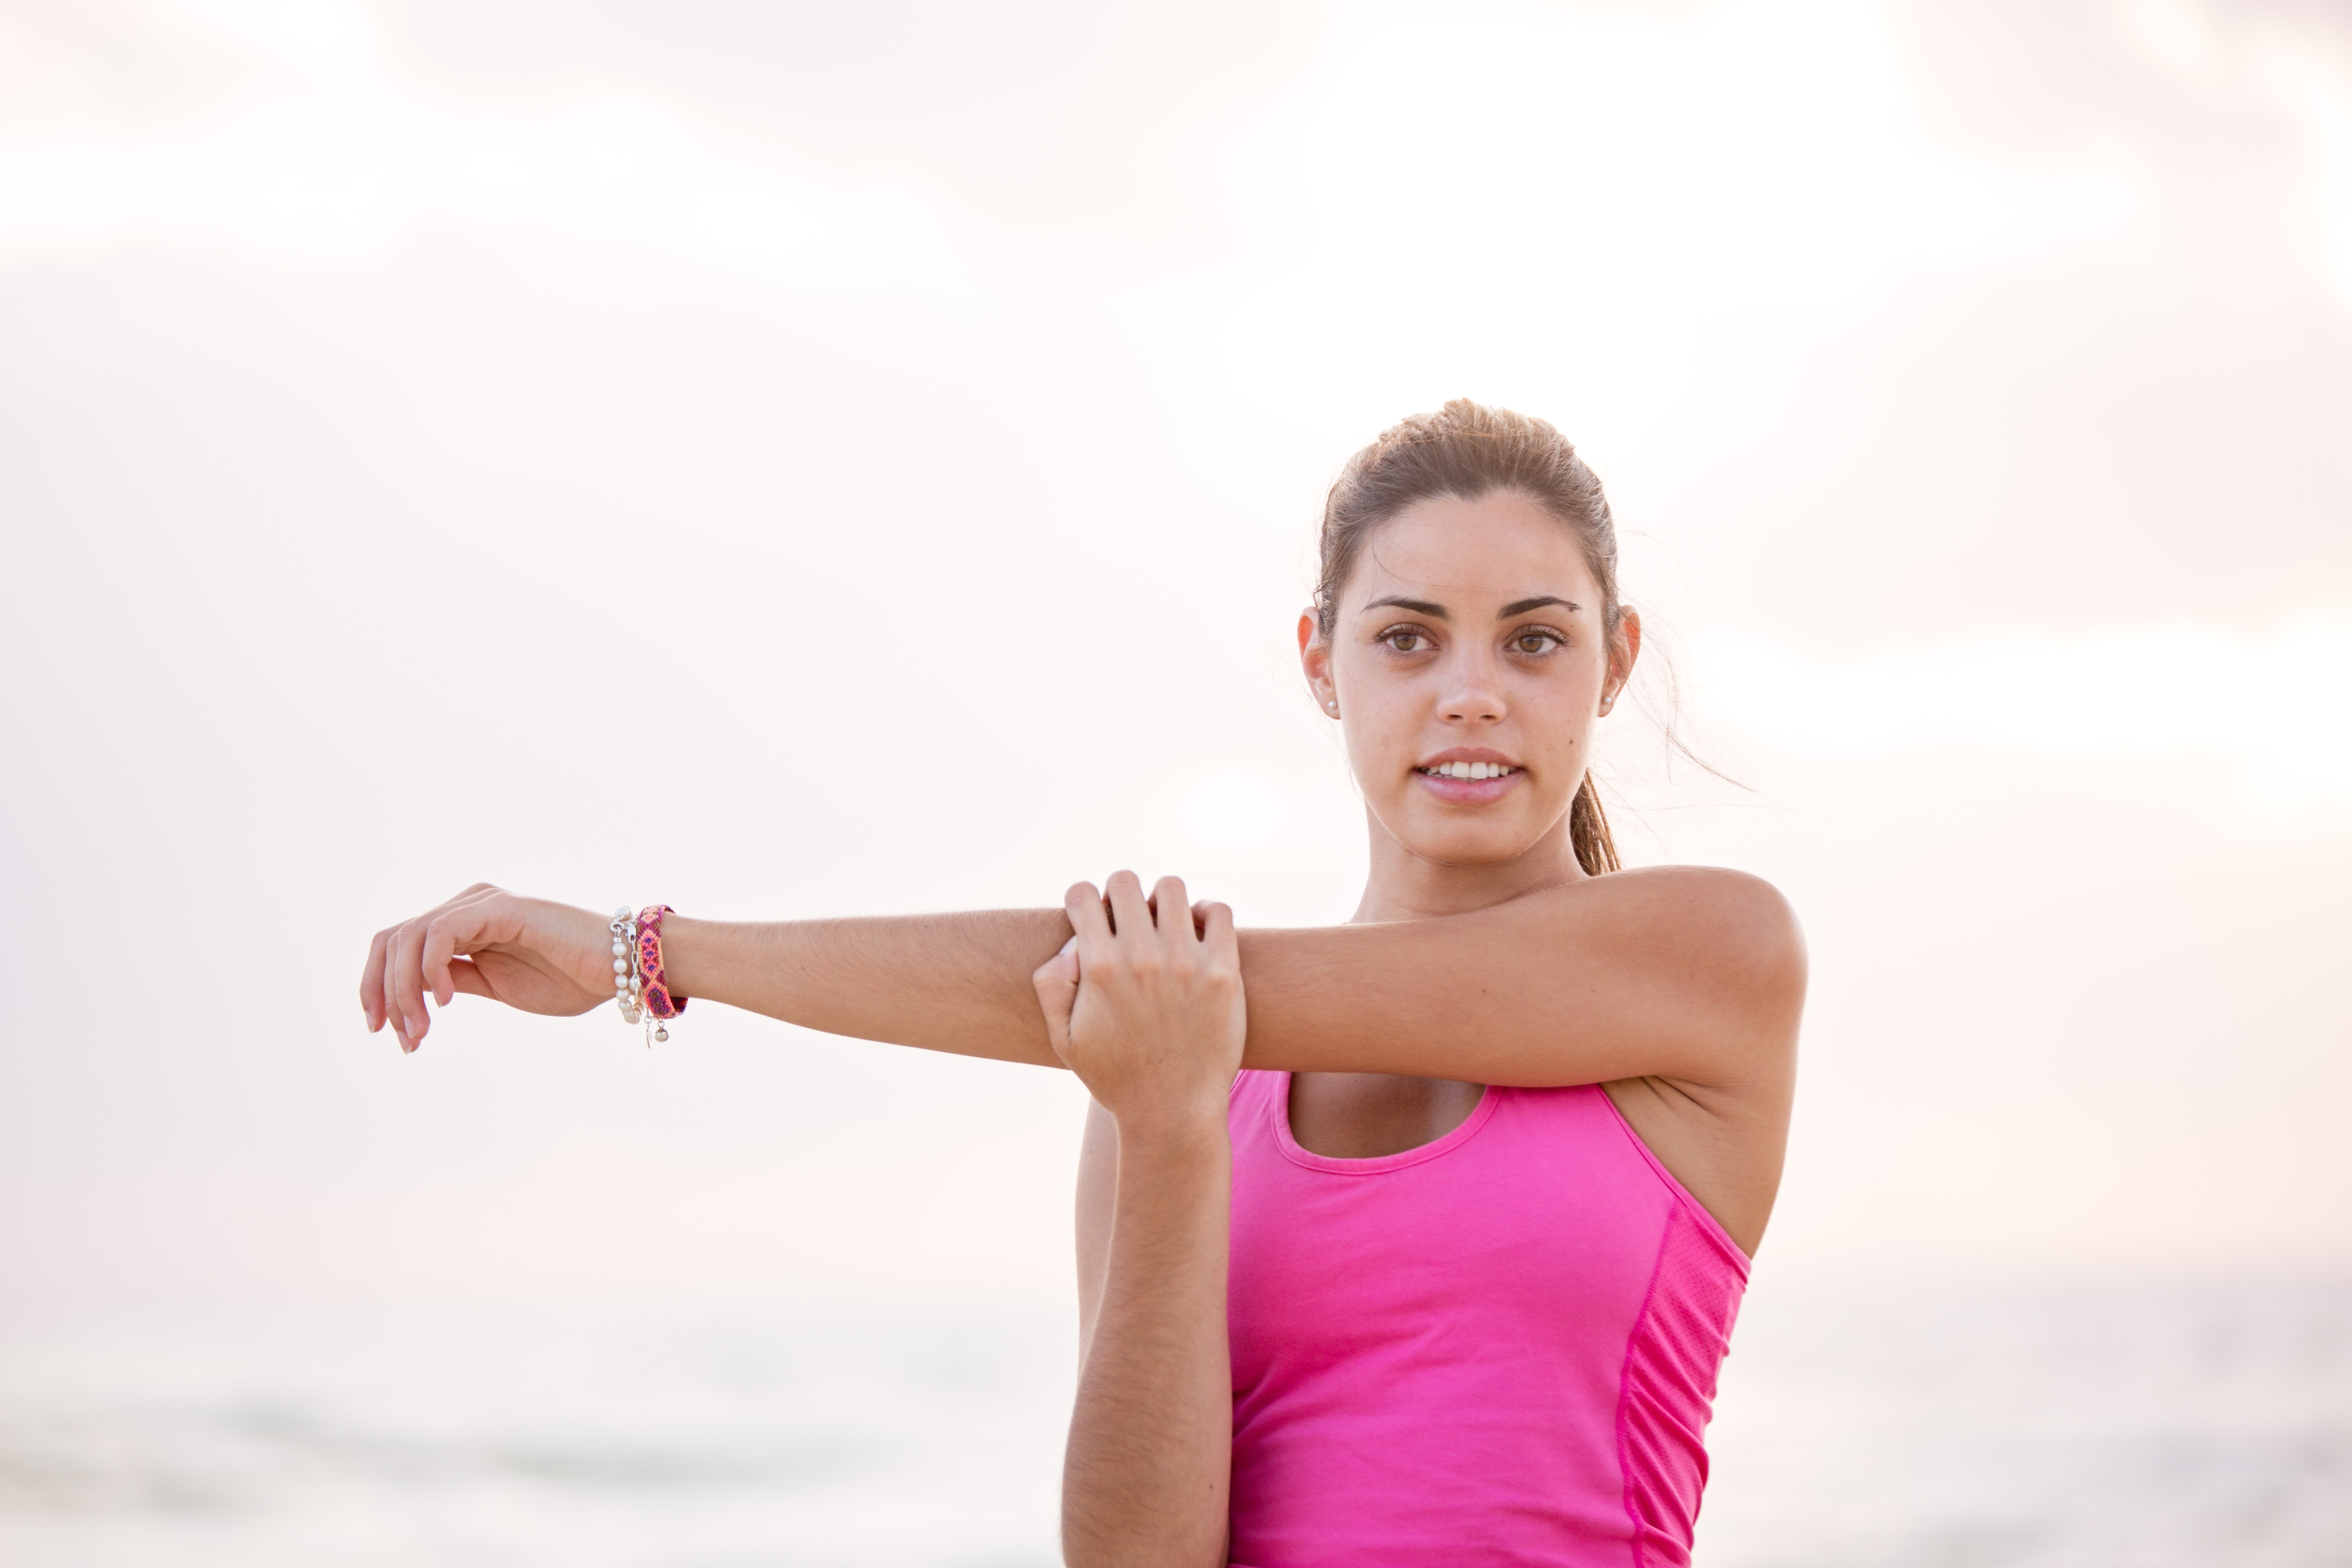 Photography of Woman in Pink Tank Top Stretching Arm, Active, Lifestyle, Woman, Stretching, HQ Photo